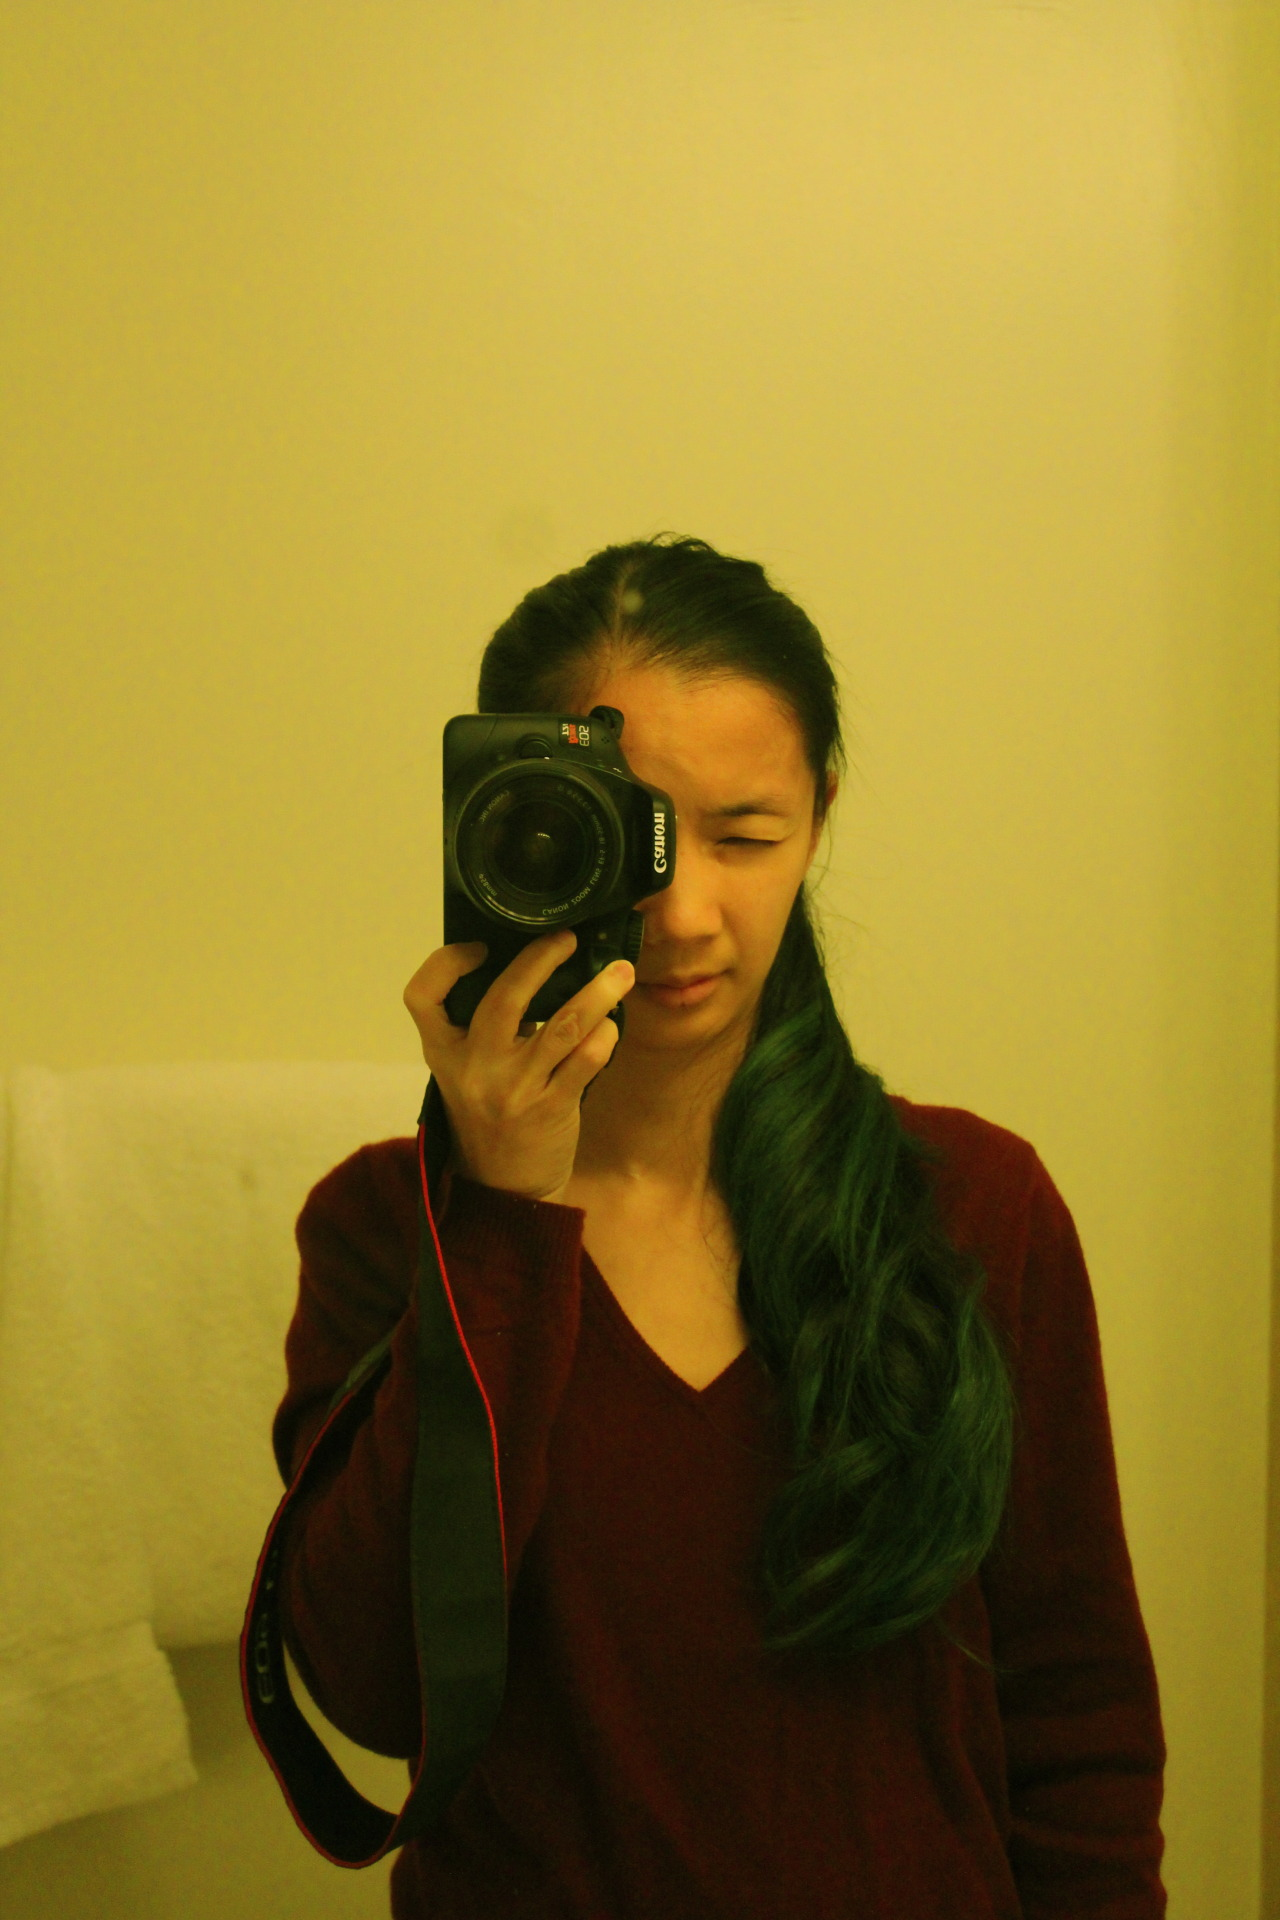 Self-Portrait - Going Green